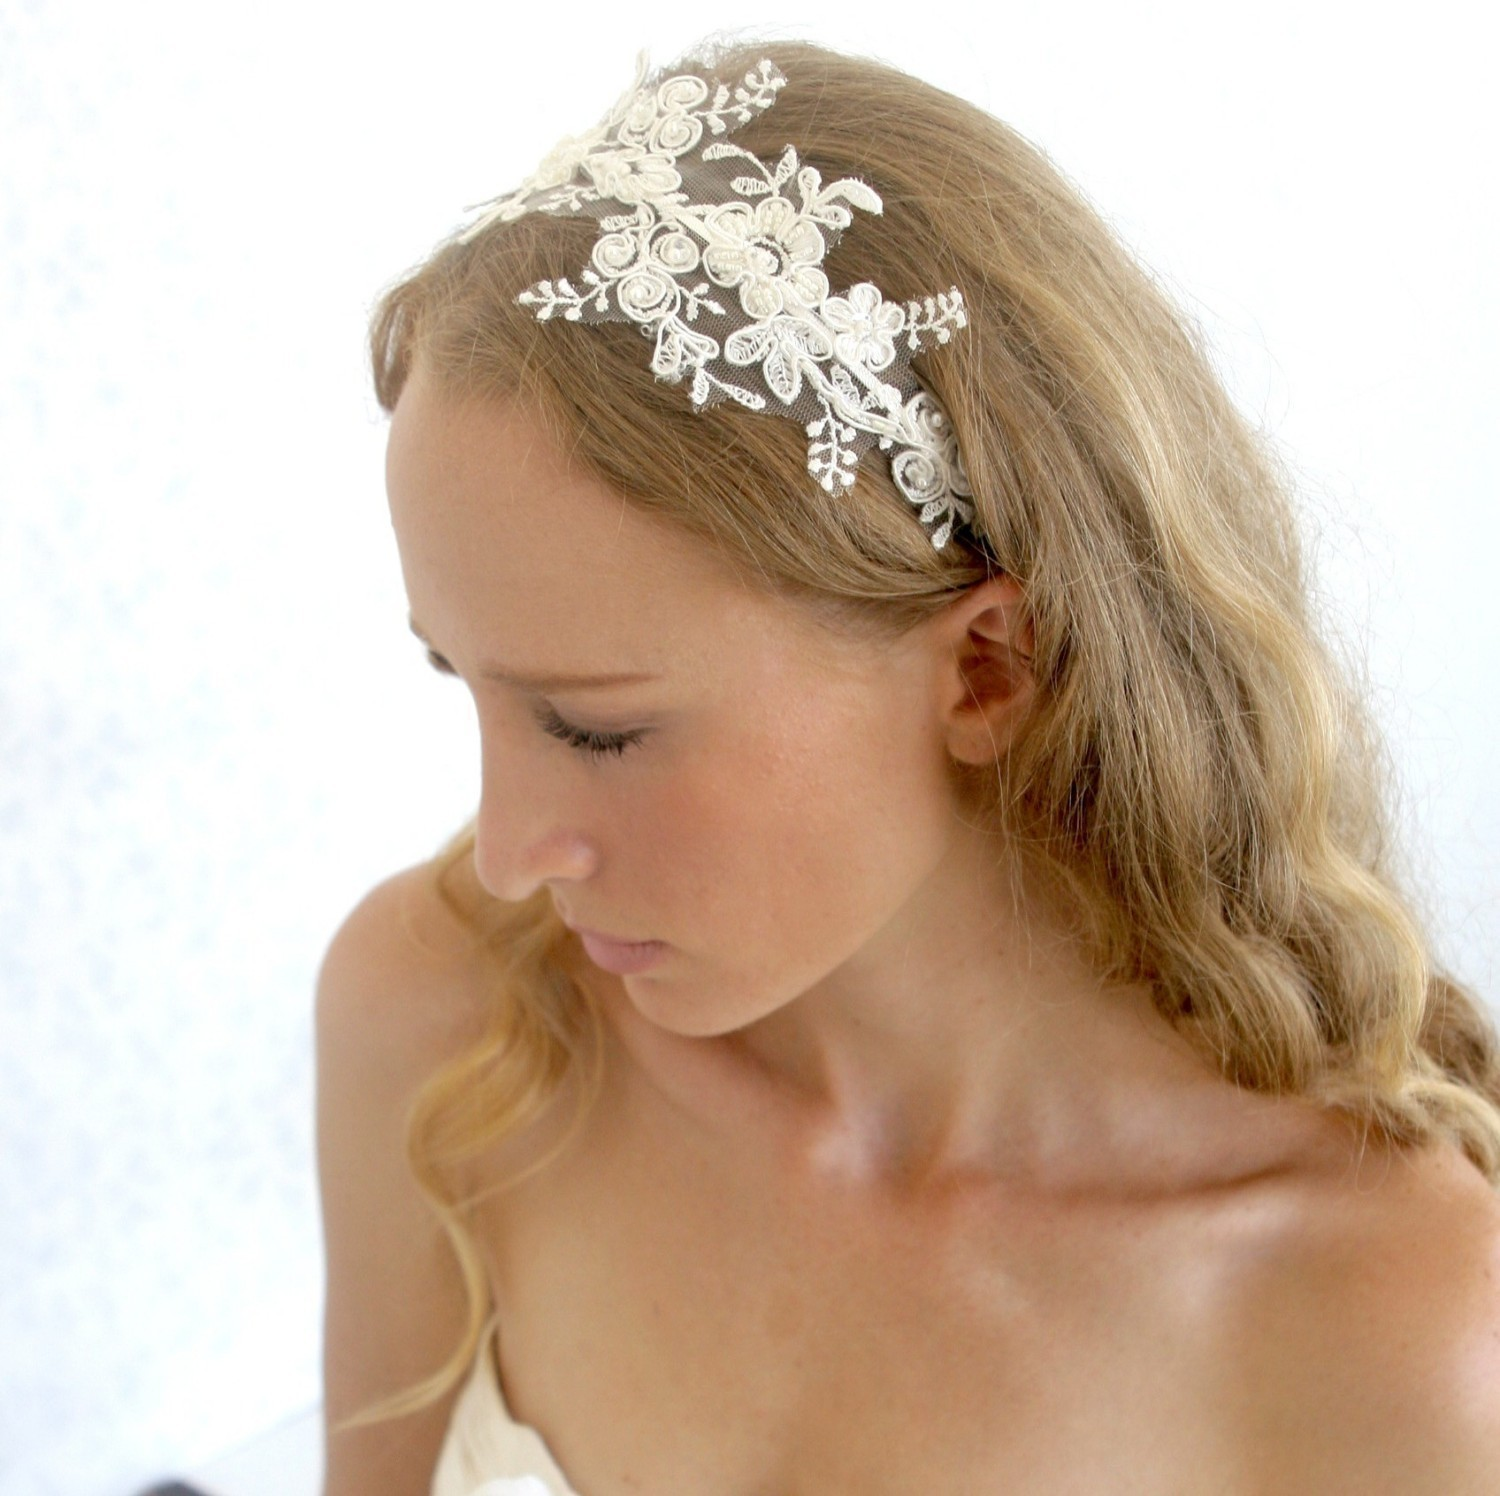 bogo sale - lace headpiece - bridal ivory beaded lace with pearls